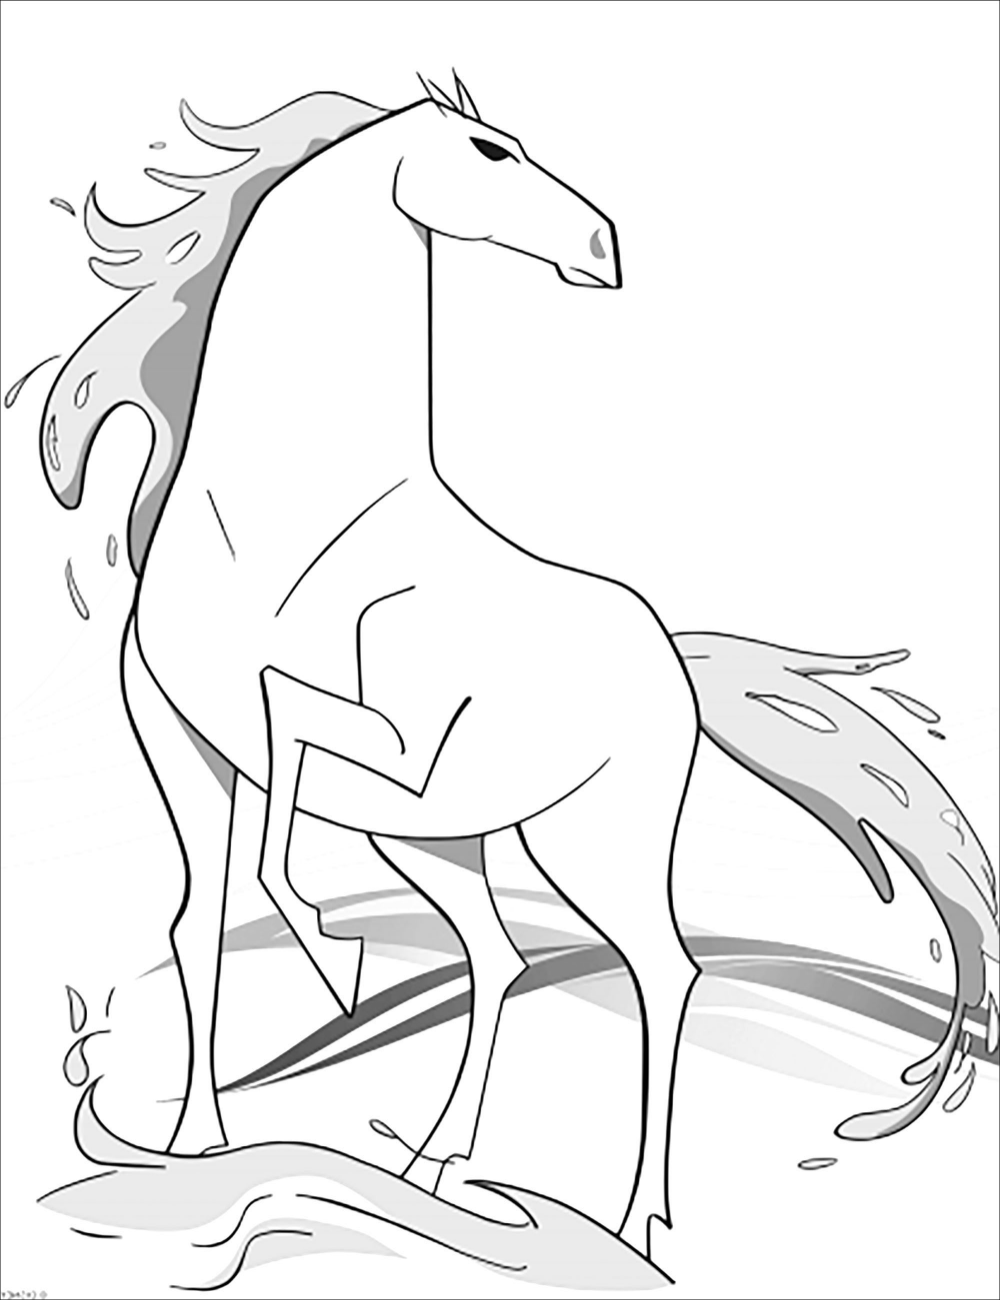 Beautiful Frozen 2 Coloring Page To Print And Color With Nokk In 2020 Coloring Pages Coloring Pages For Kids Coloring Pages To Print